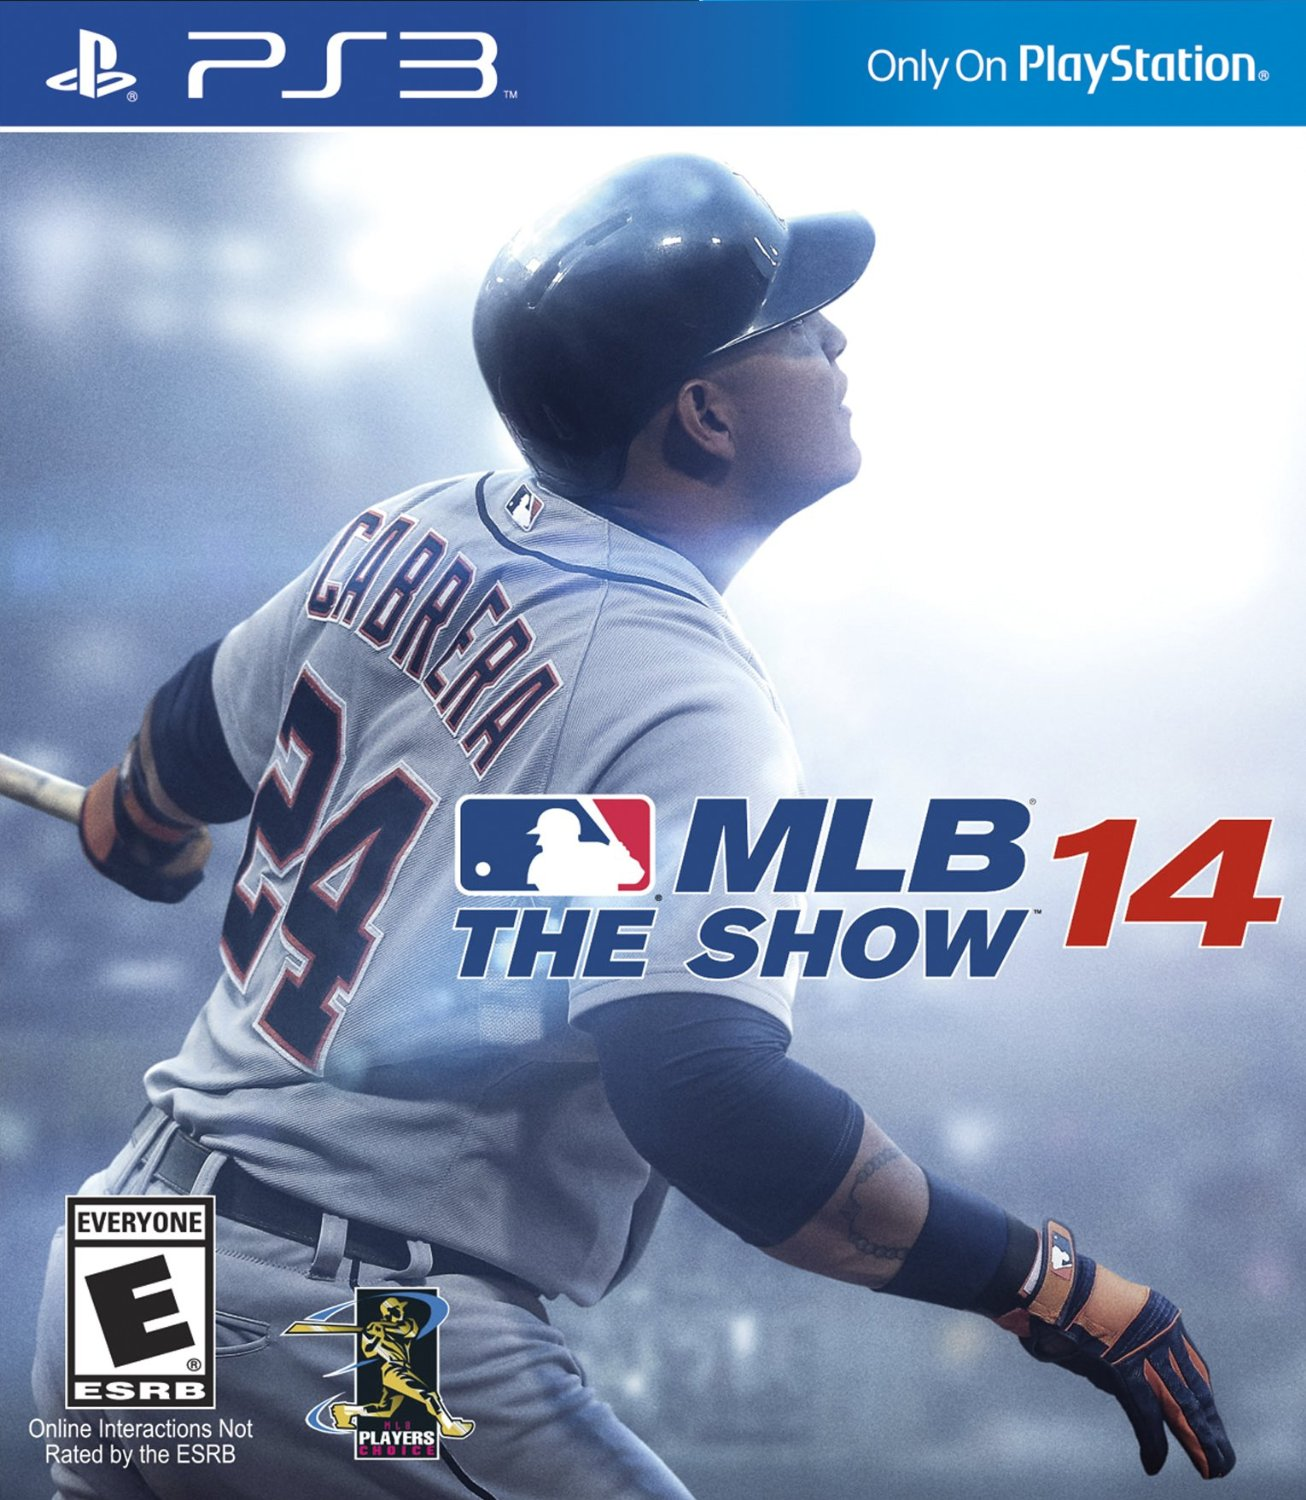 MLB 15 THE SHOW – PS3